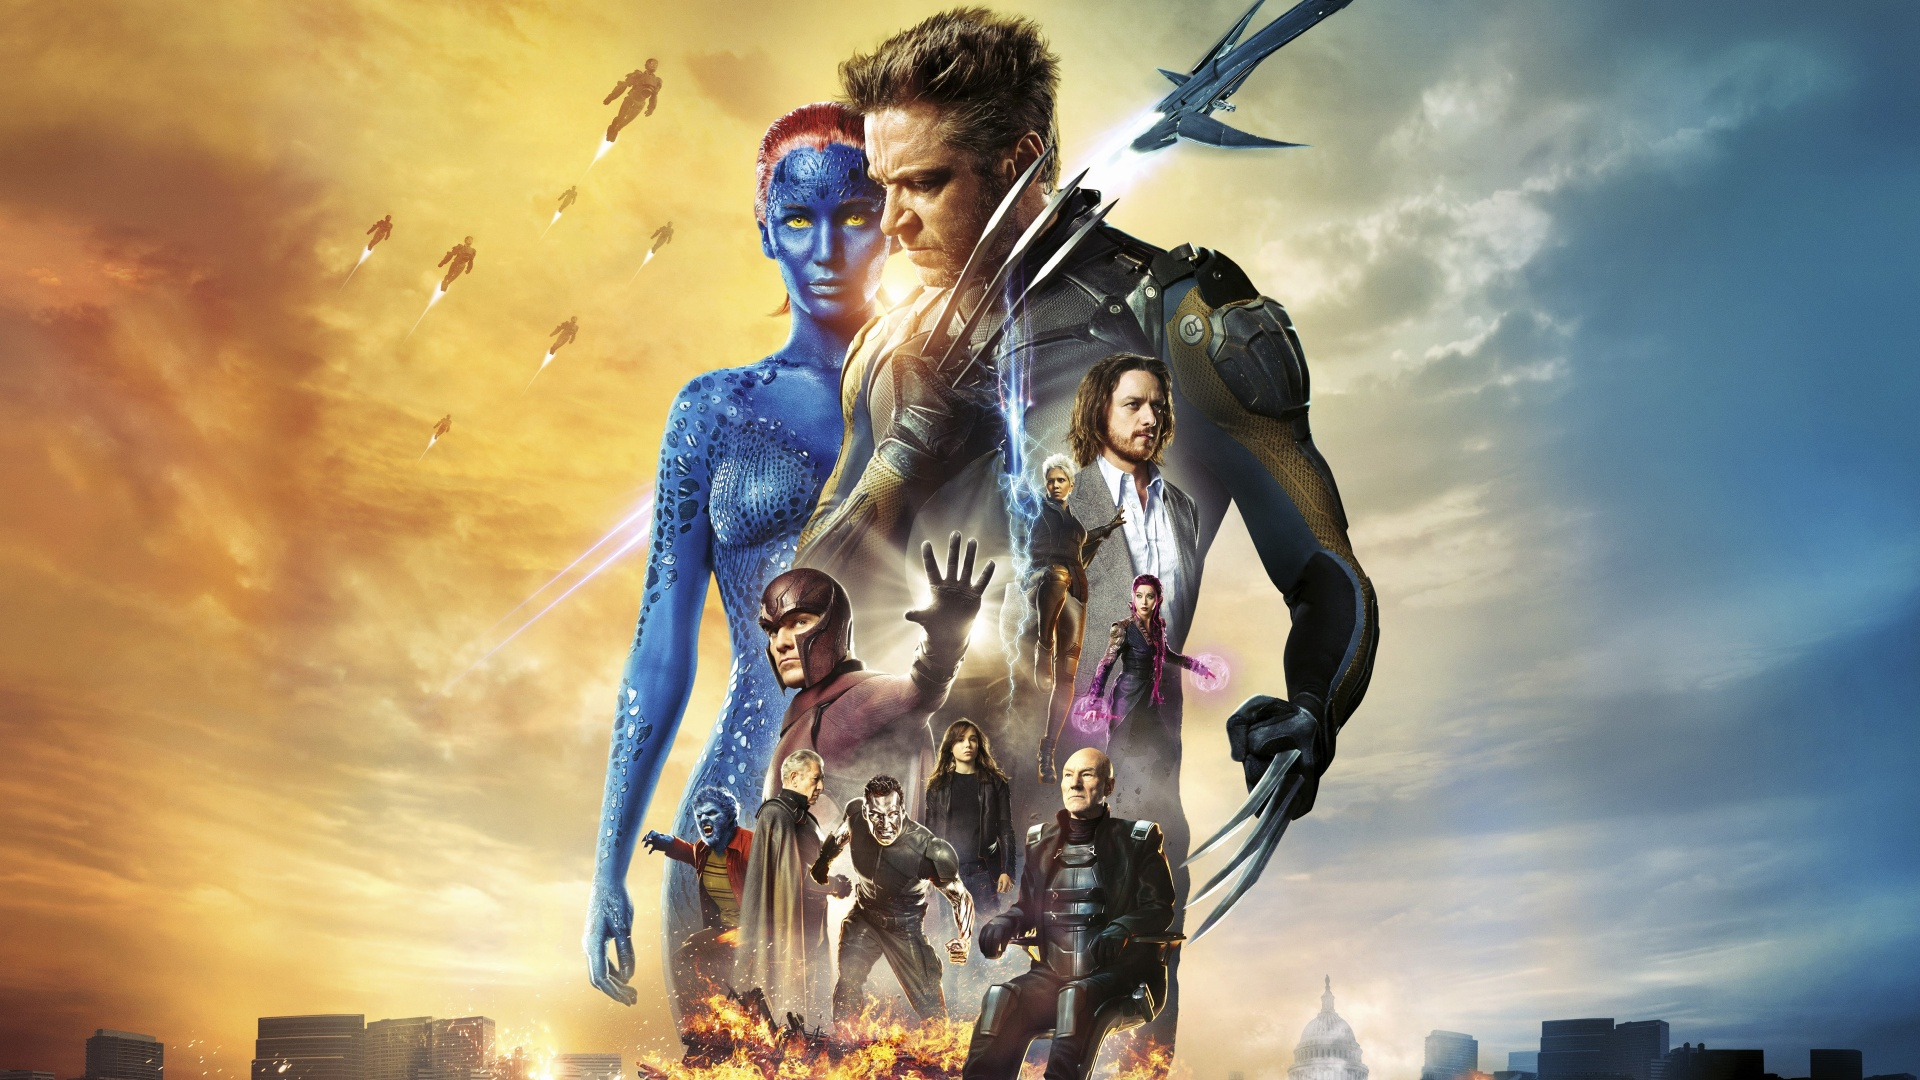 xmen days of future past   Marvel Live action film wallpaper 1920x1080